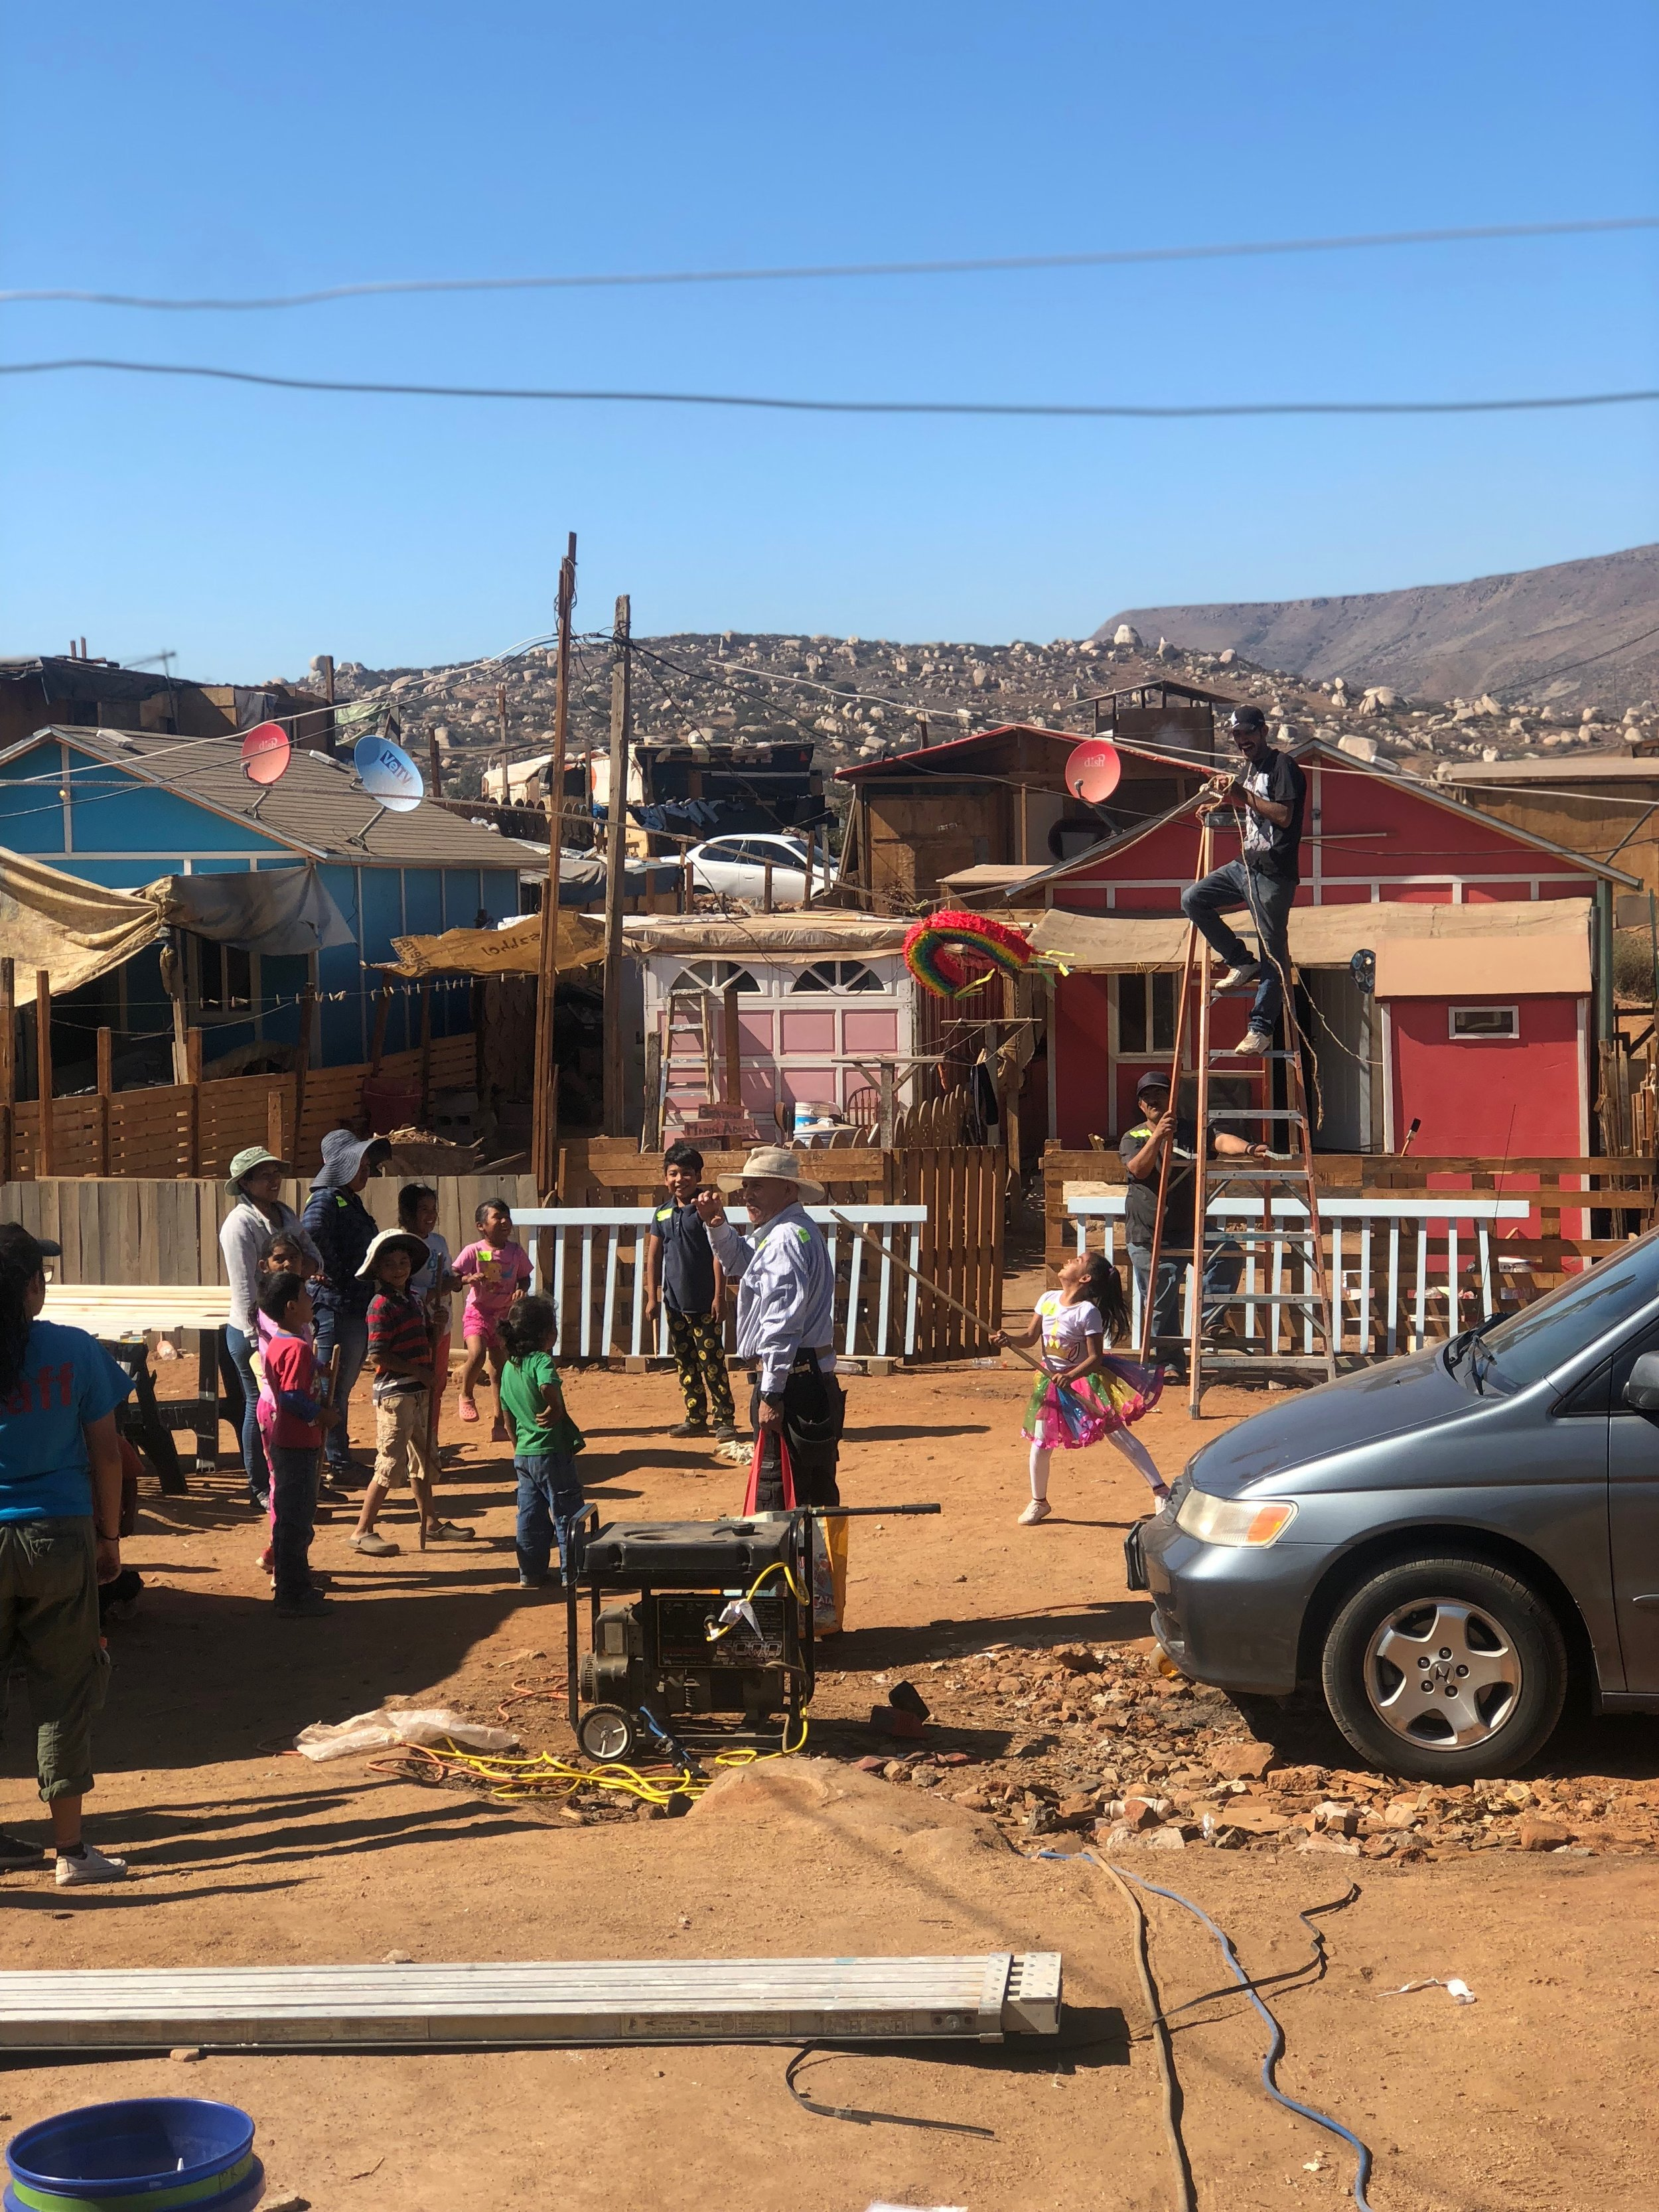 The local children having fun with their piñata. They were so happy we were there.